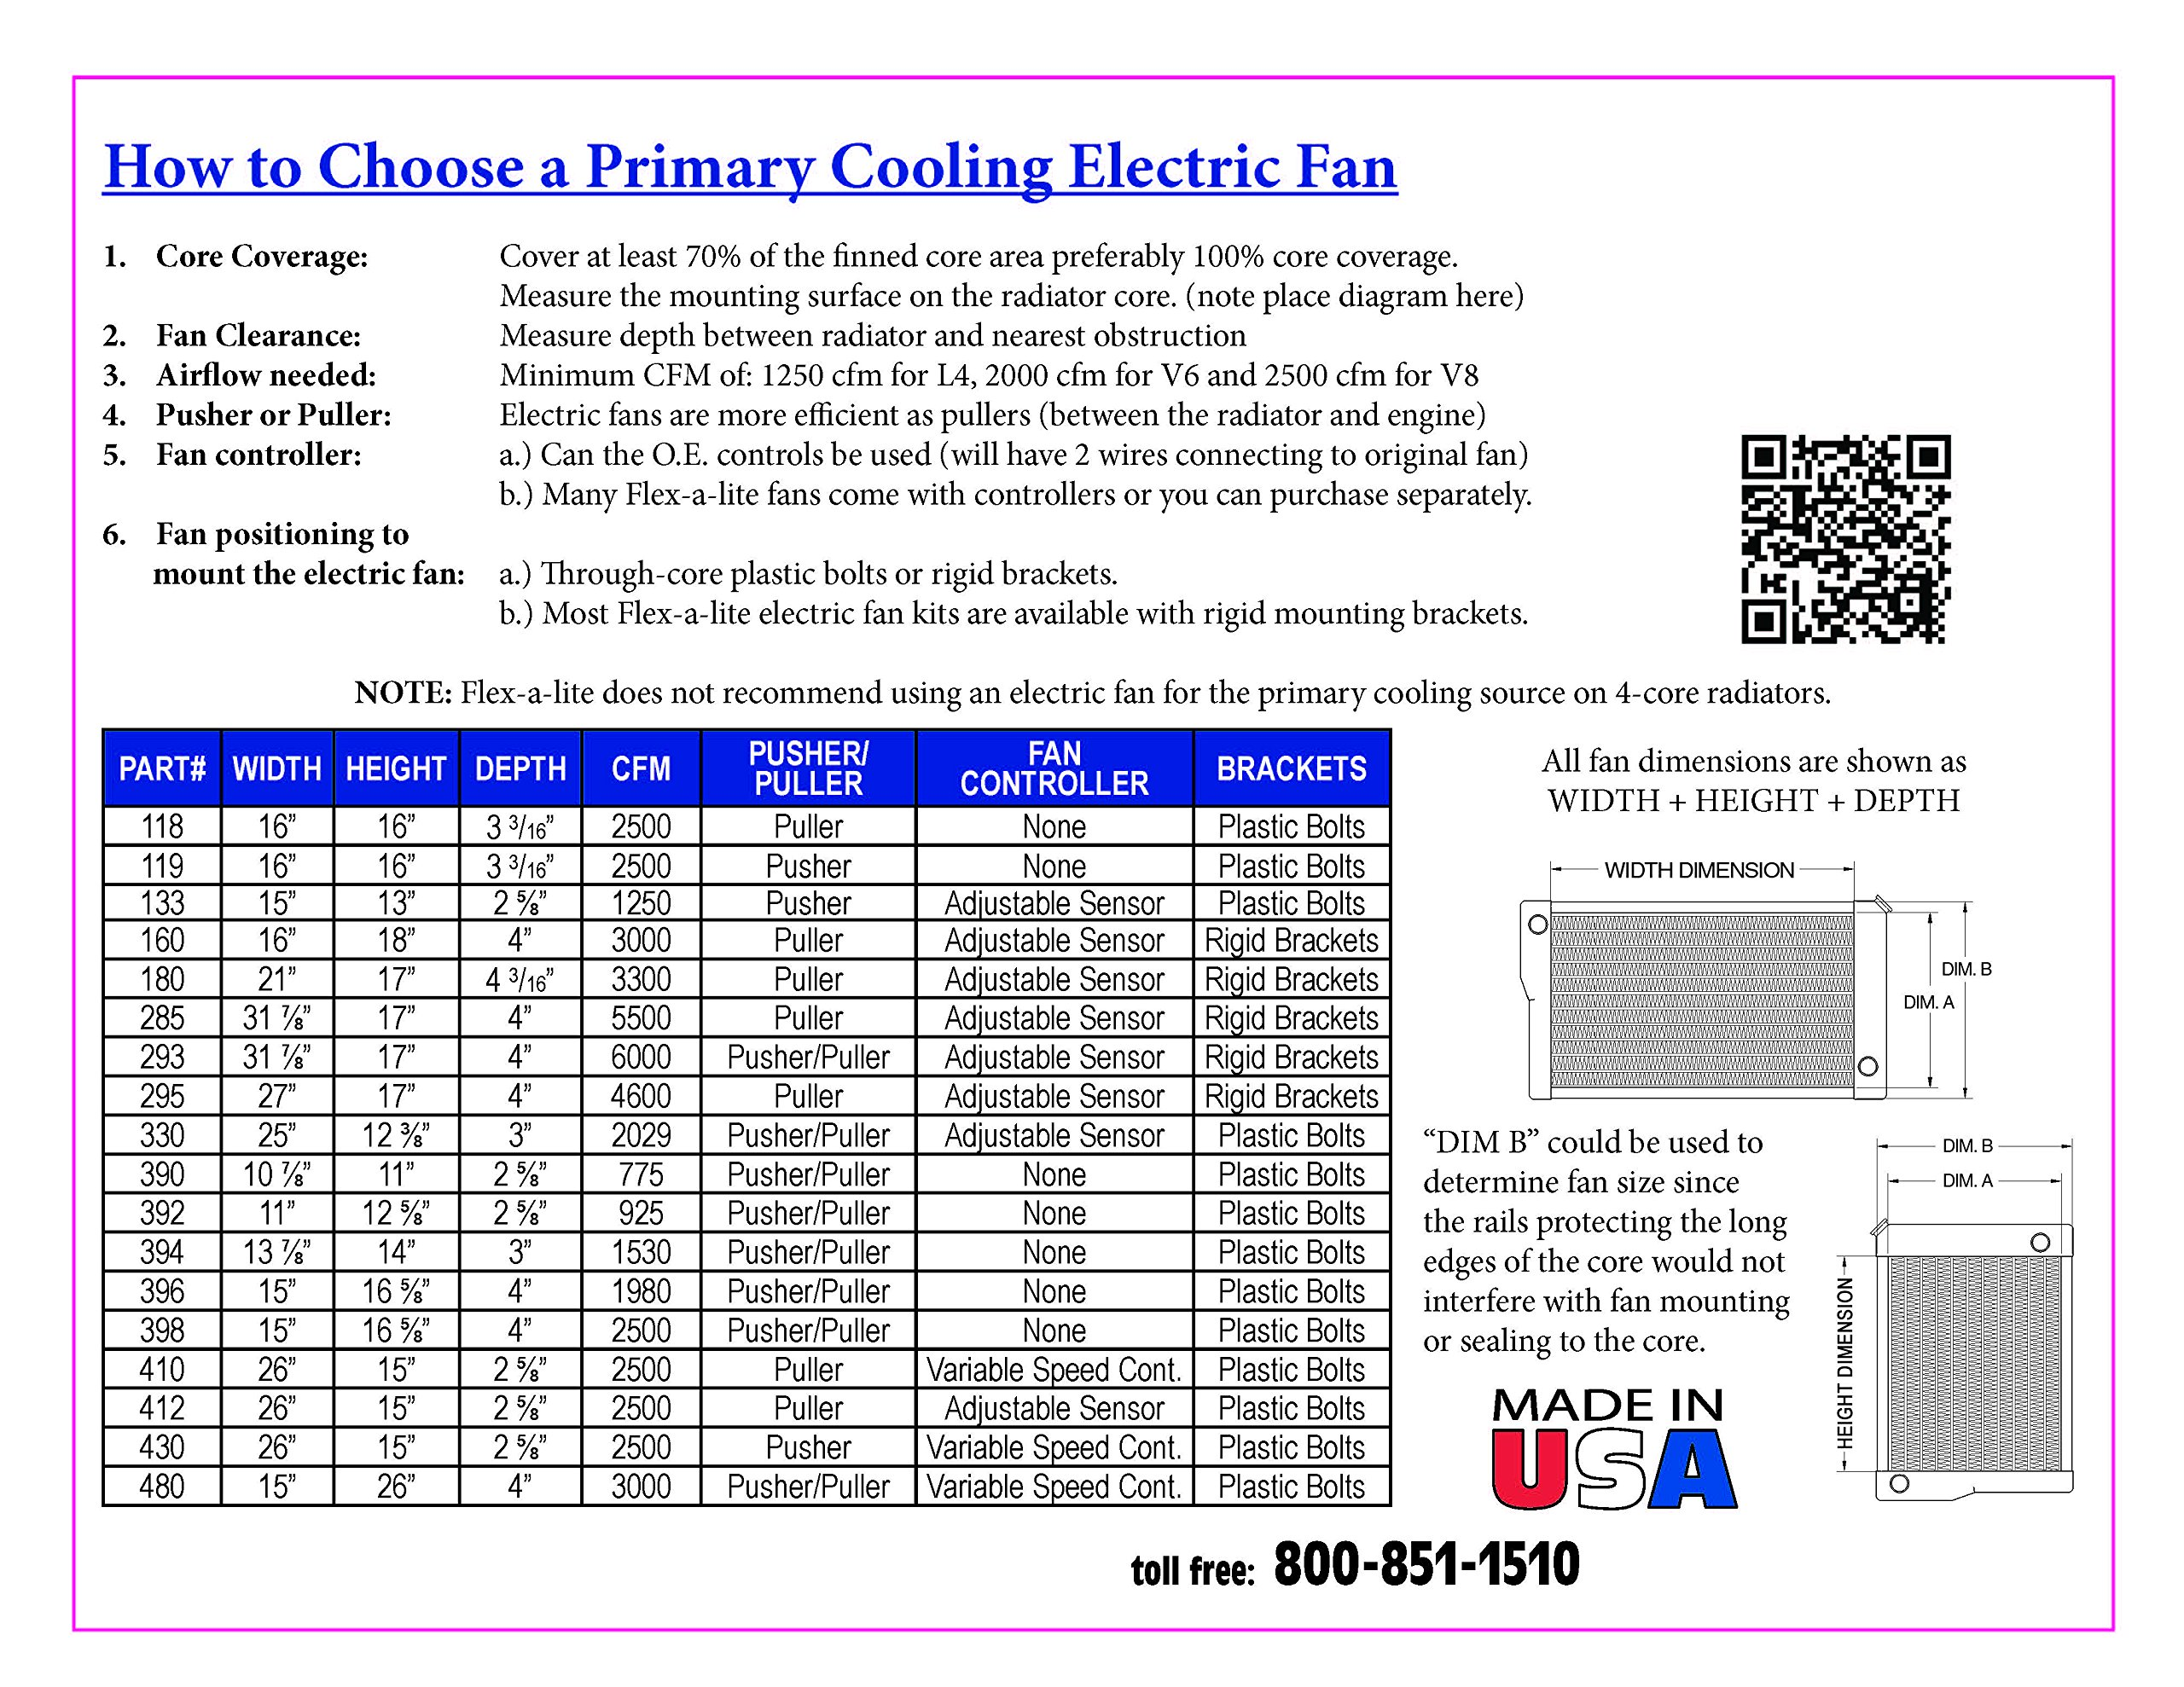 Flex-a-lite 295 27'' Dual Electric-Fan System with Variable Speed Controller